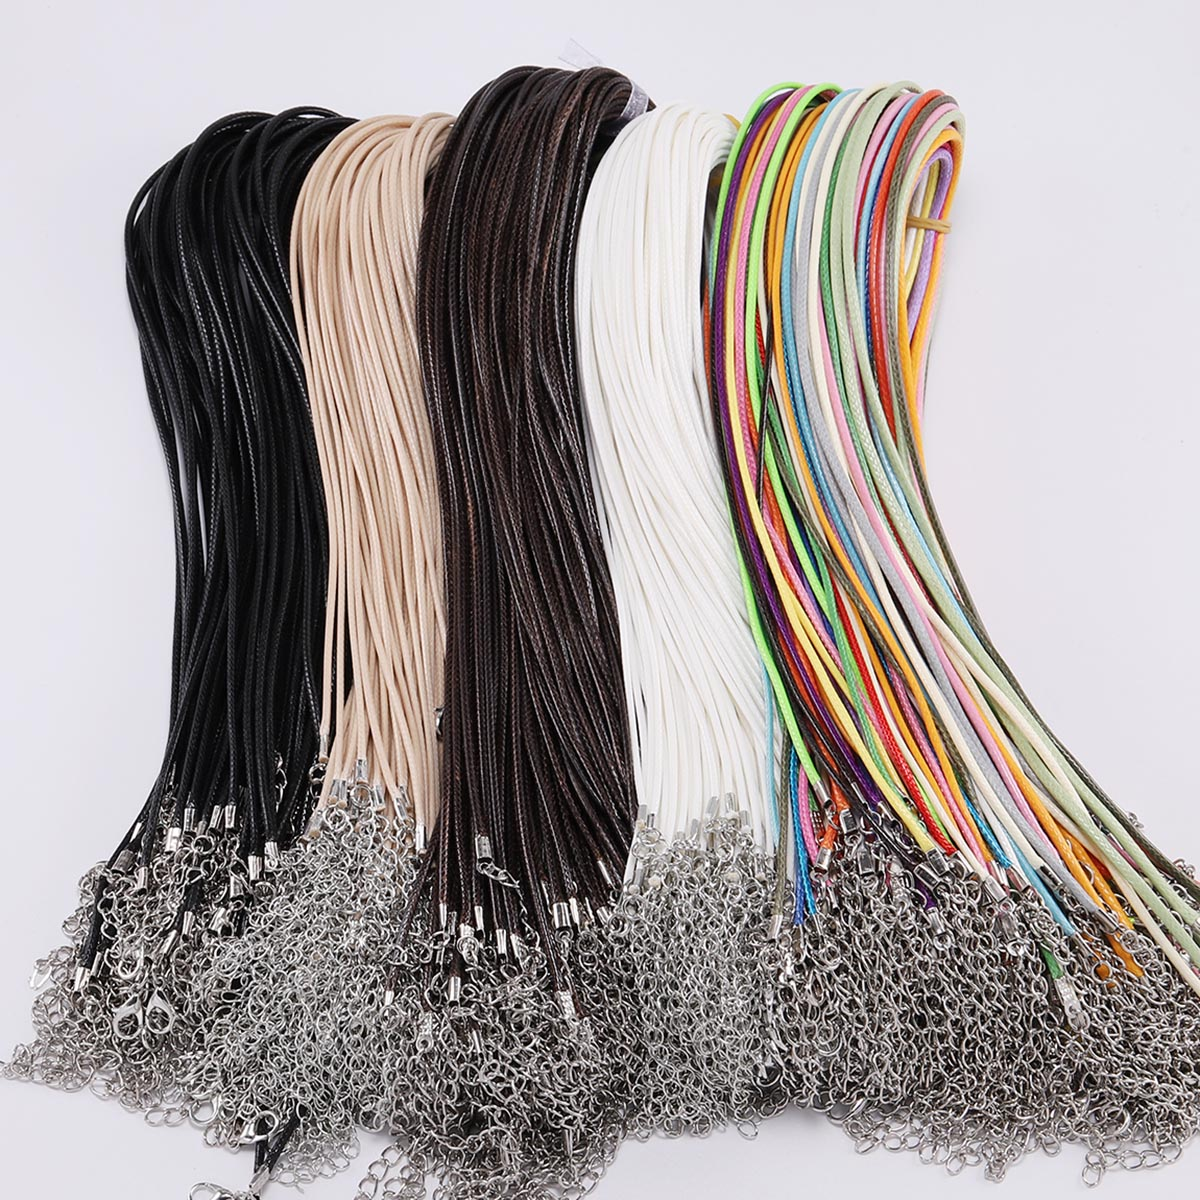 10 Pcs/lot Dia 1.5/2mm Real Leather Cord Necklace With Clasp Adjustable Braided Rope For Jewelry Making DIY Necklace Bracelet(China)